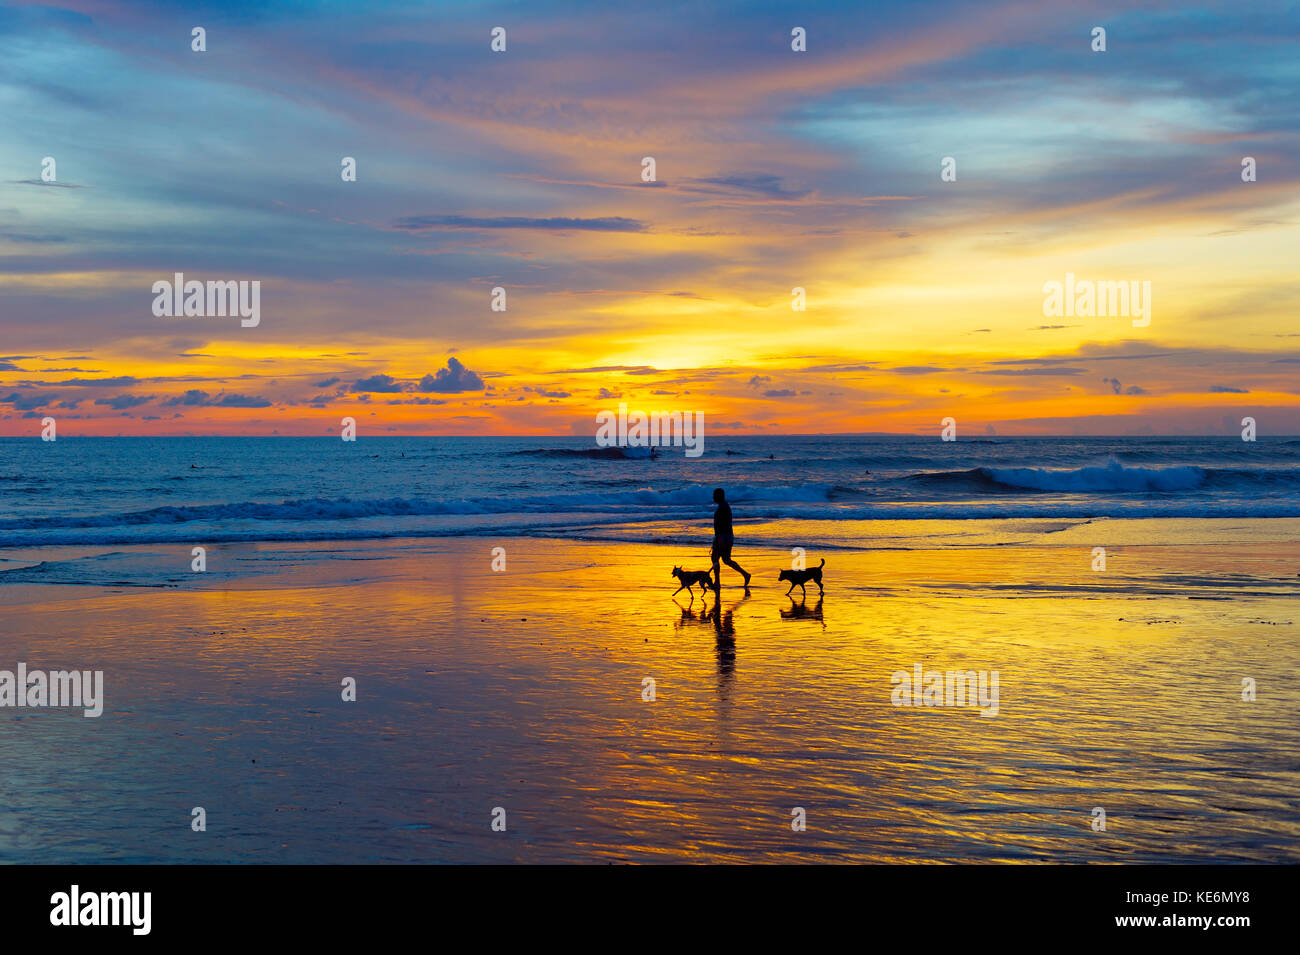 Silhouette of a man walking with the dogs on a beach at sunset. Bali island, Indonesia - Stock Image